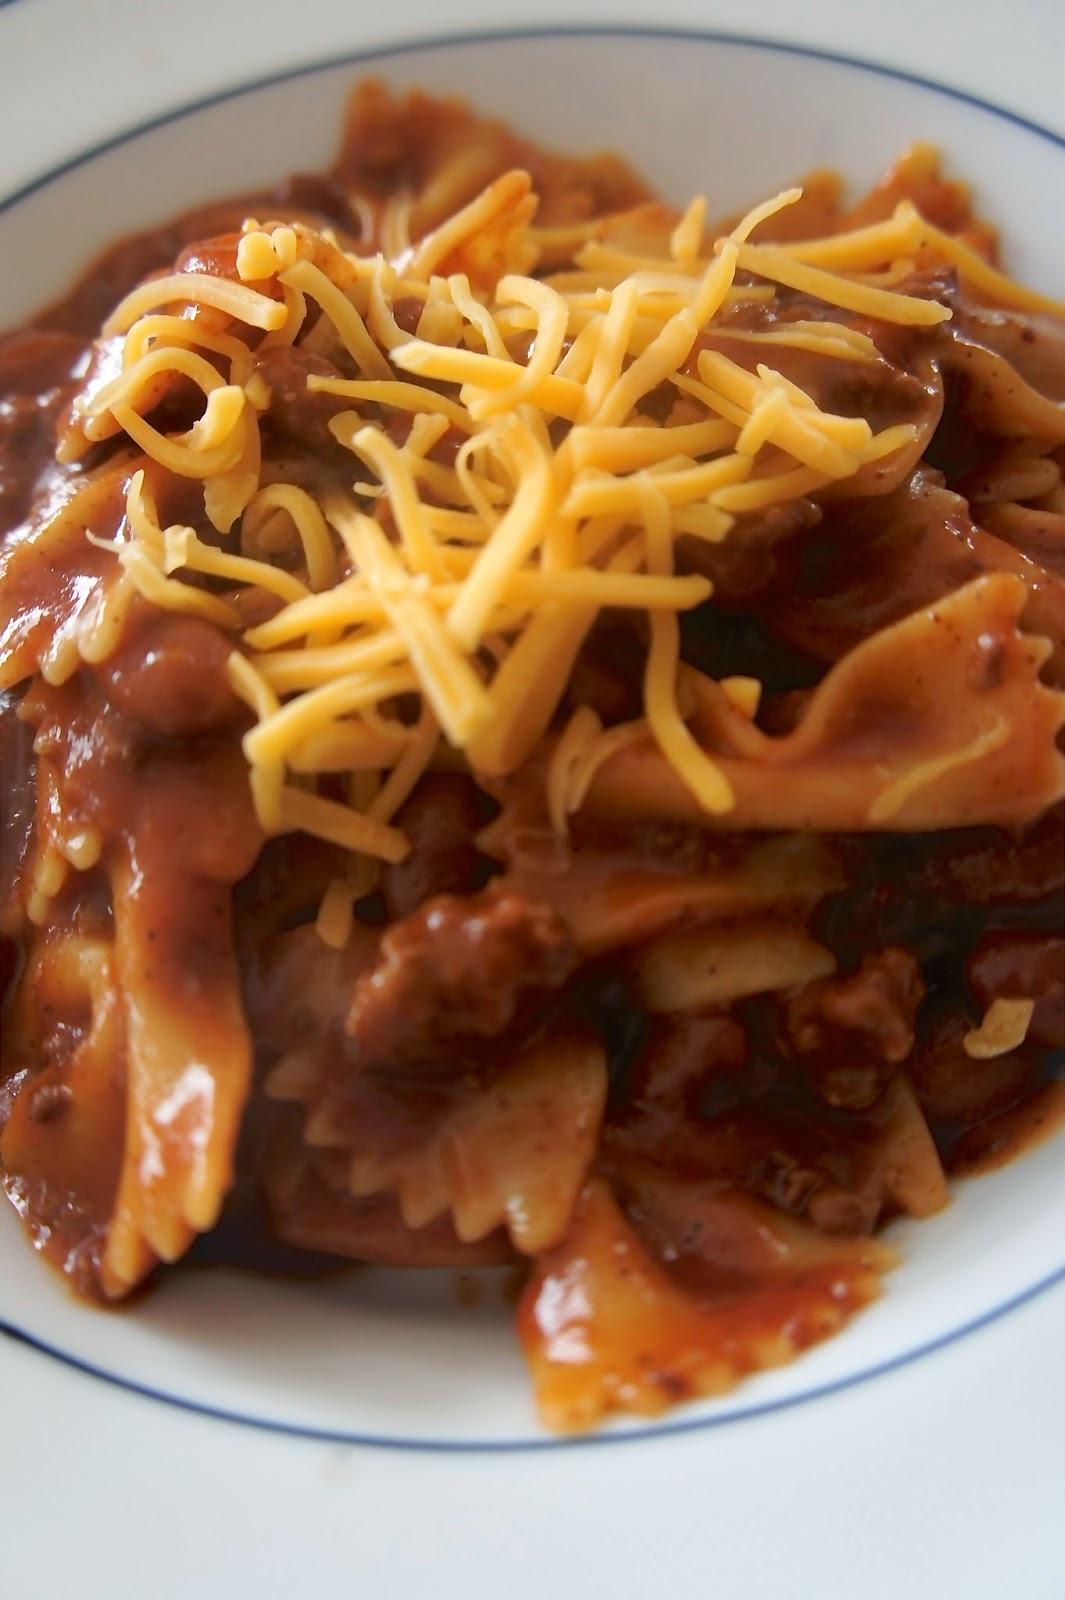 Savory Sweet and Satisfying: Wagon Wheel Chili